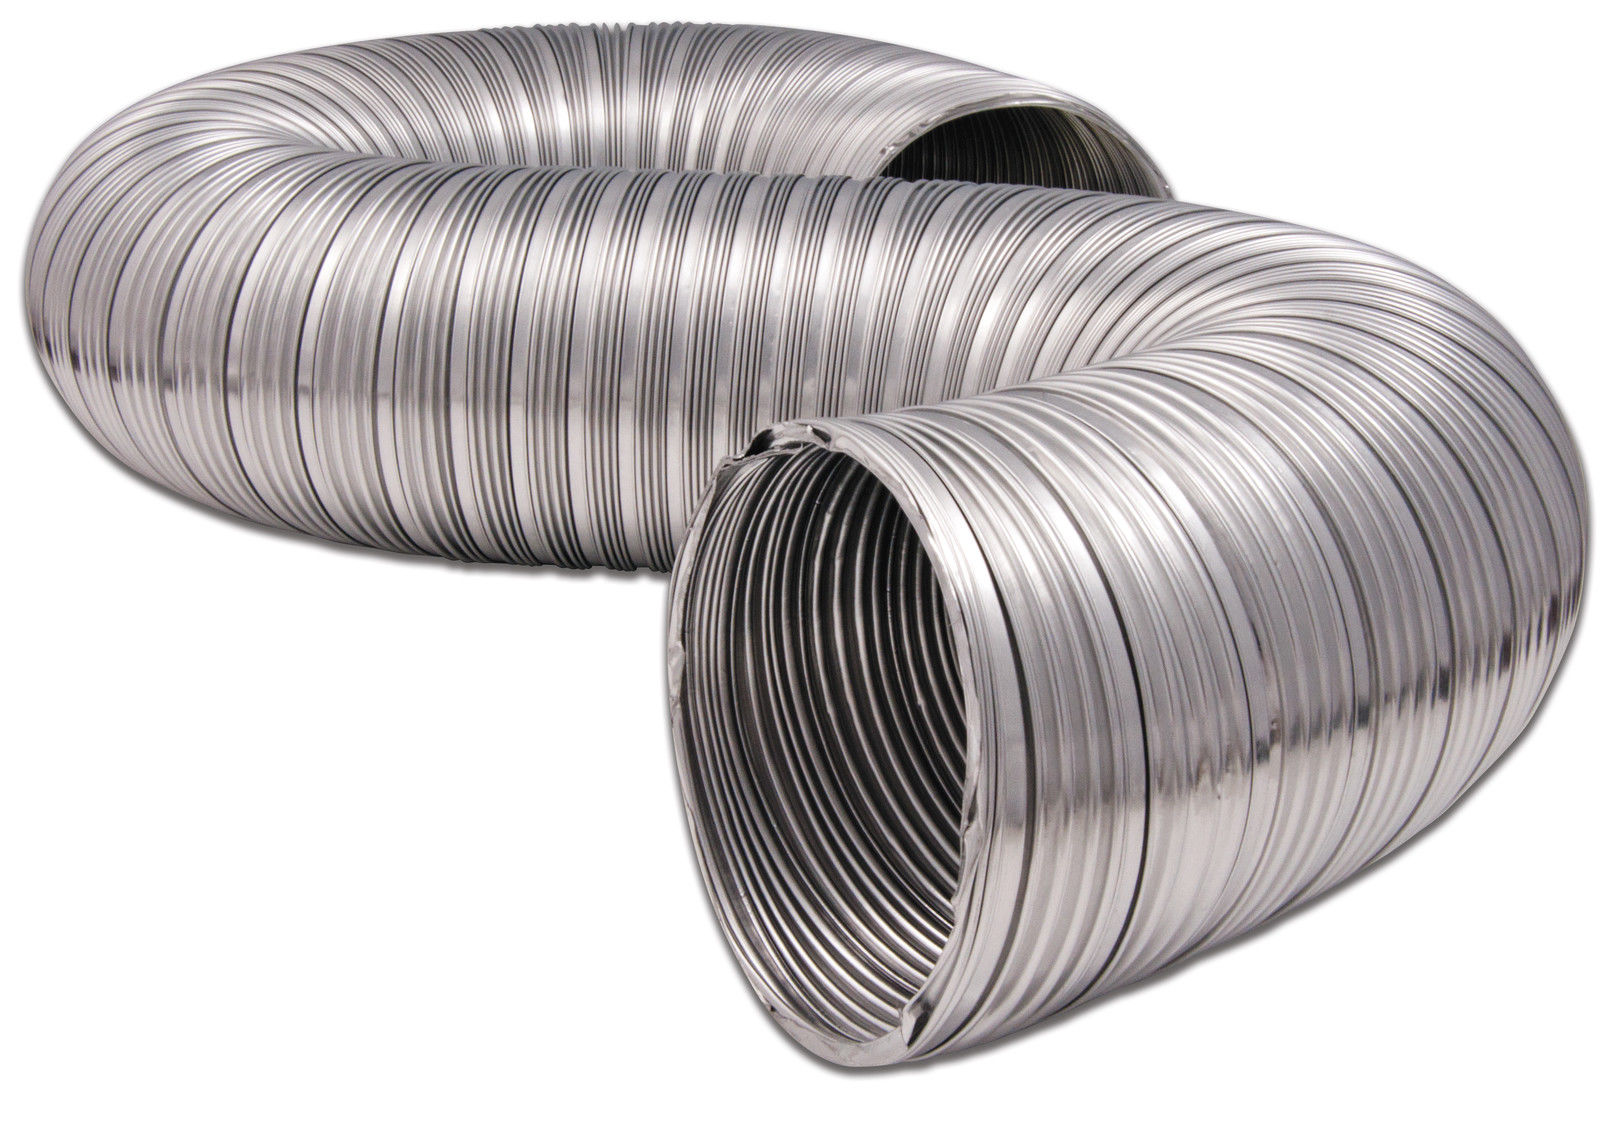 8 Ventilation Duct : Mfx quot semi rigid aluminum dryer vent ducting